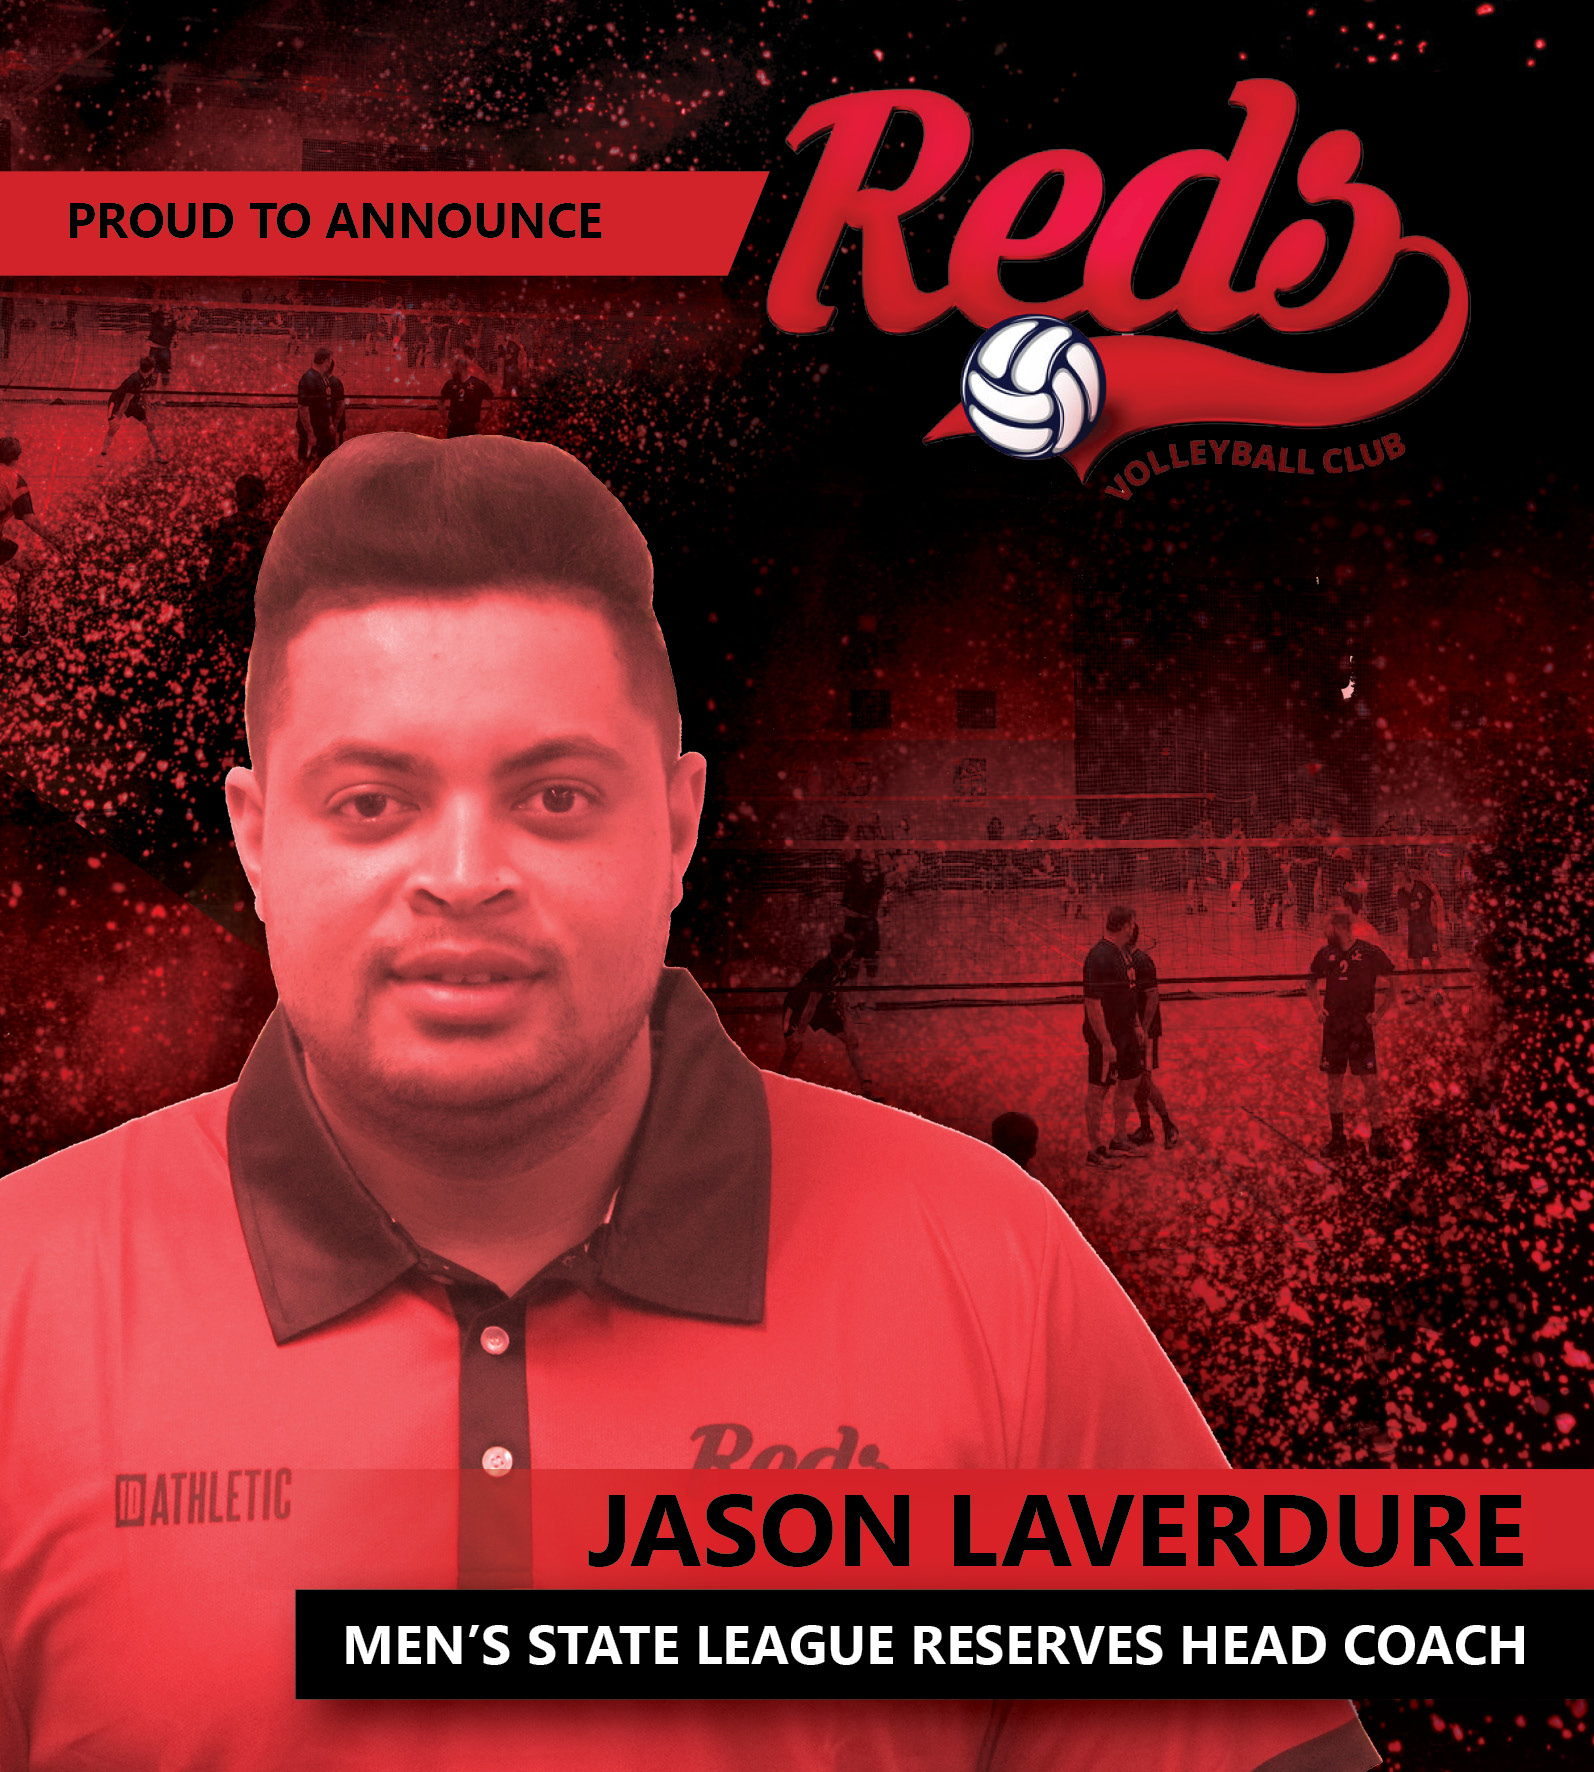 Jason Laverdure - Men's State League Reserves Head Coach